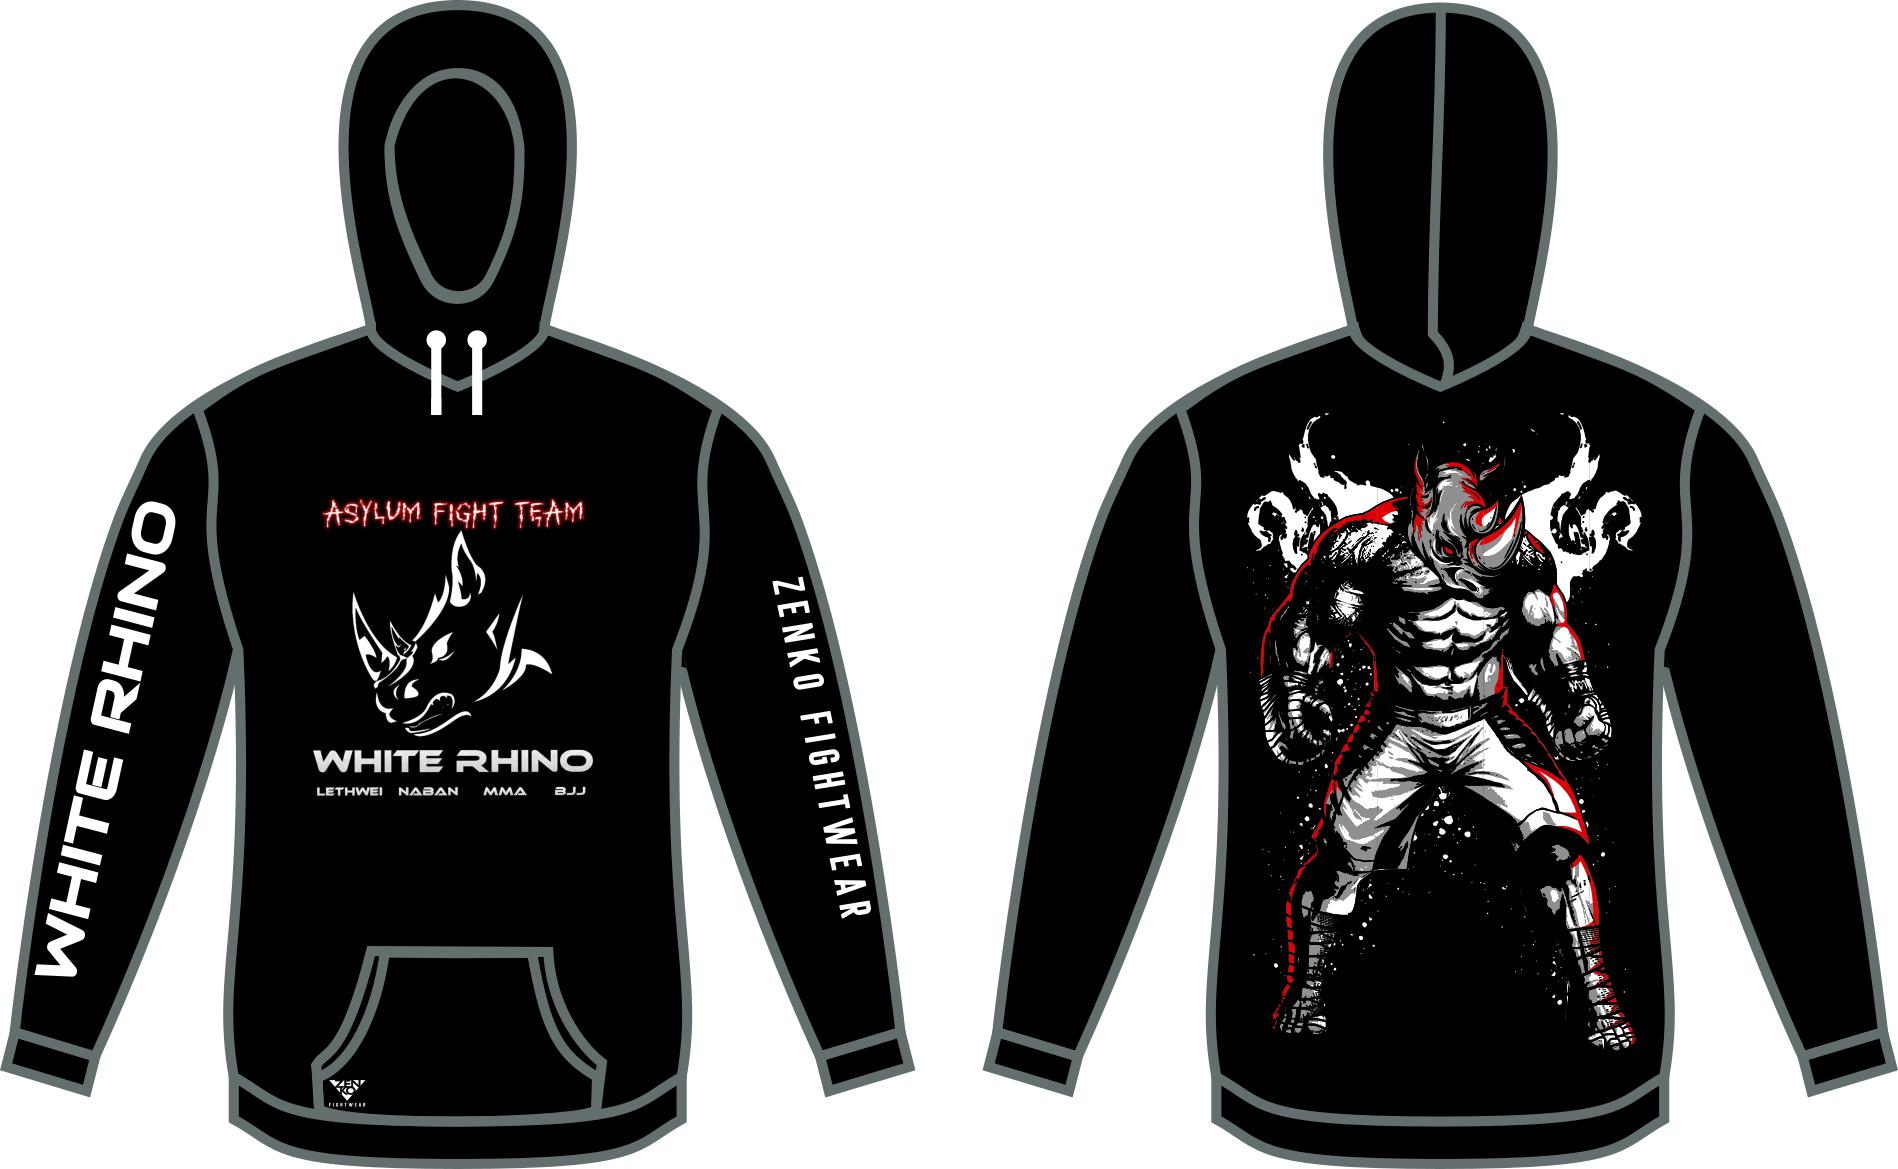 Asylum Fight Team - White Rhino Kickboxing Rhino Pullover Hoodie - Zenko Fightwear